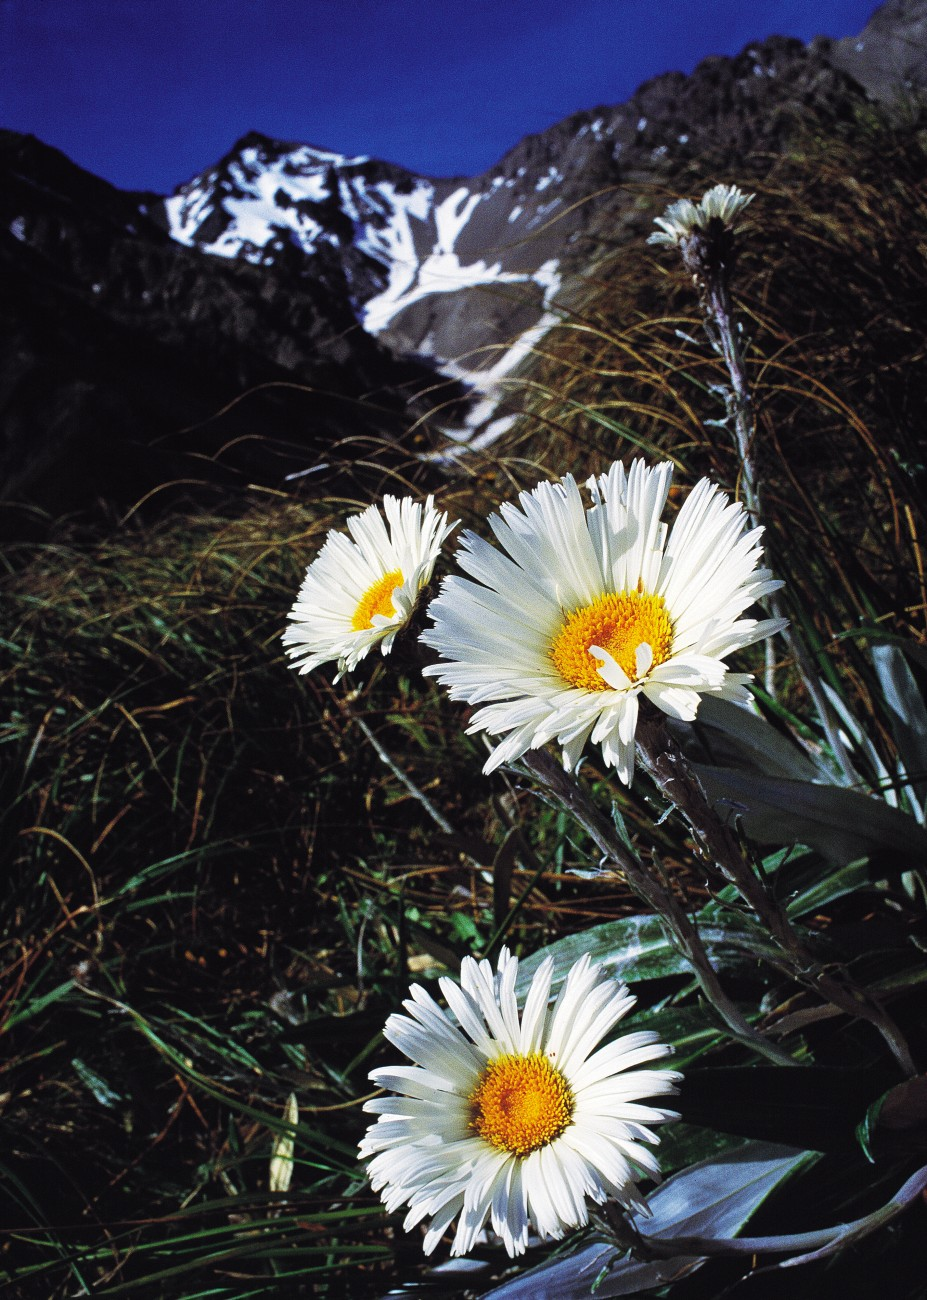 Celmisia semicordata, here photographed in the Seaward Kaikoura mountains, is the largest Celmisia, reaching 0.75 m in height. It is found through the moister areas of the South Island lower alpine zone.